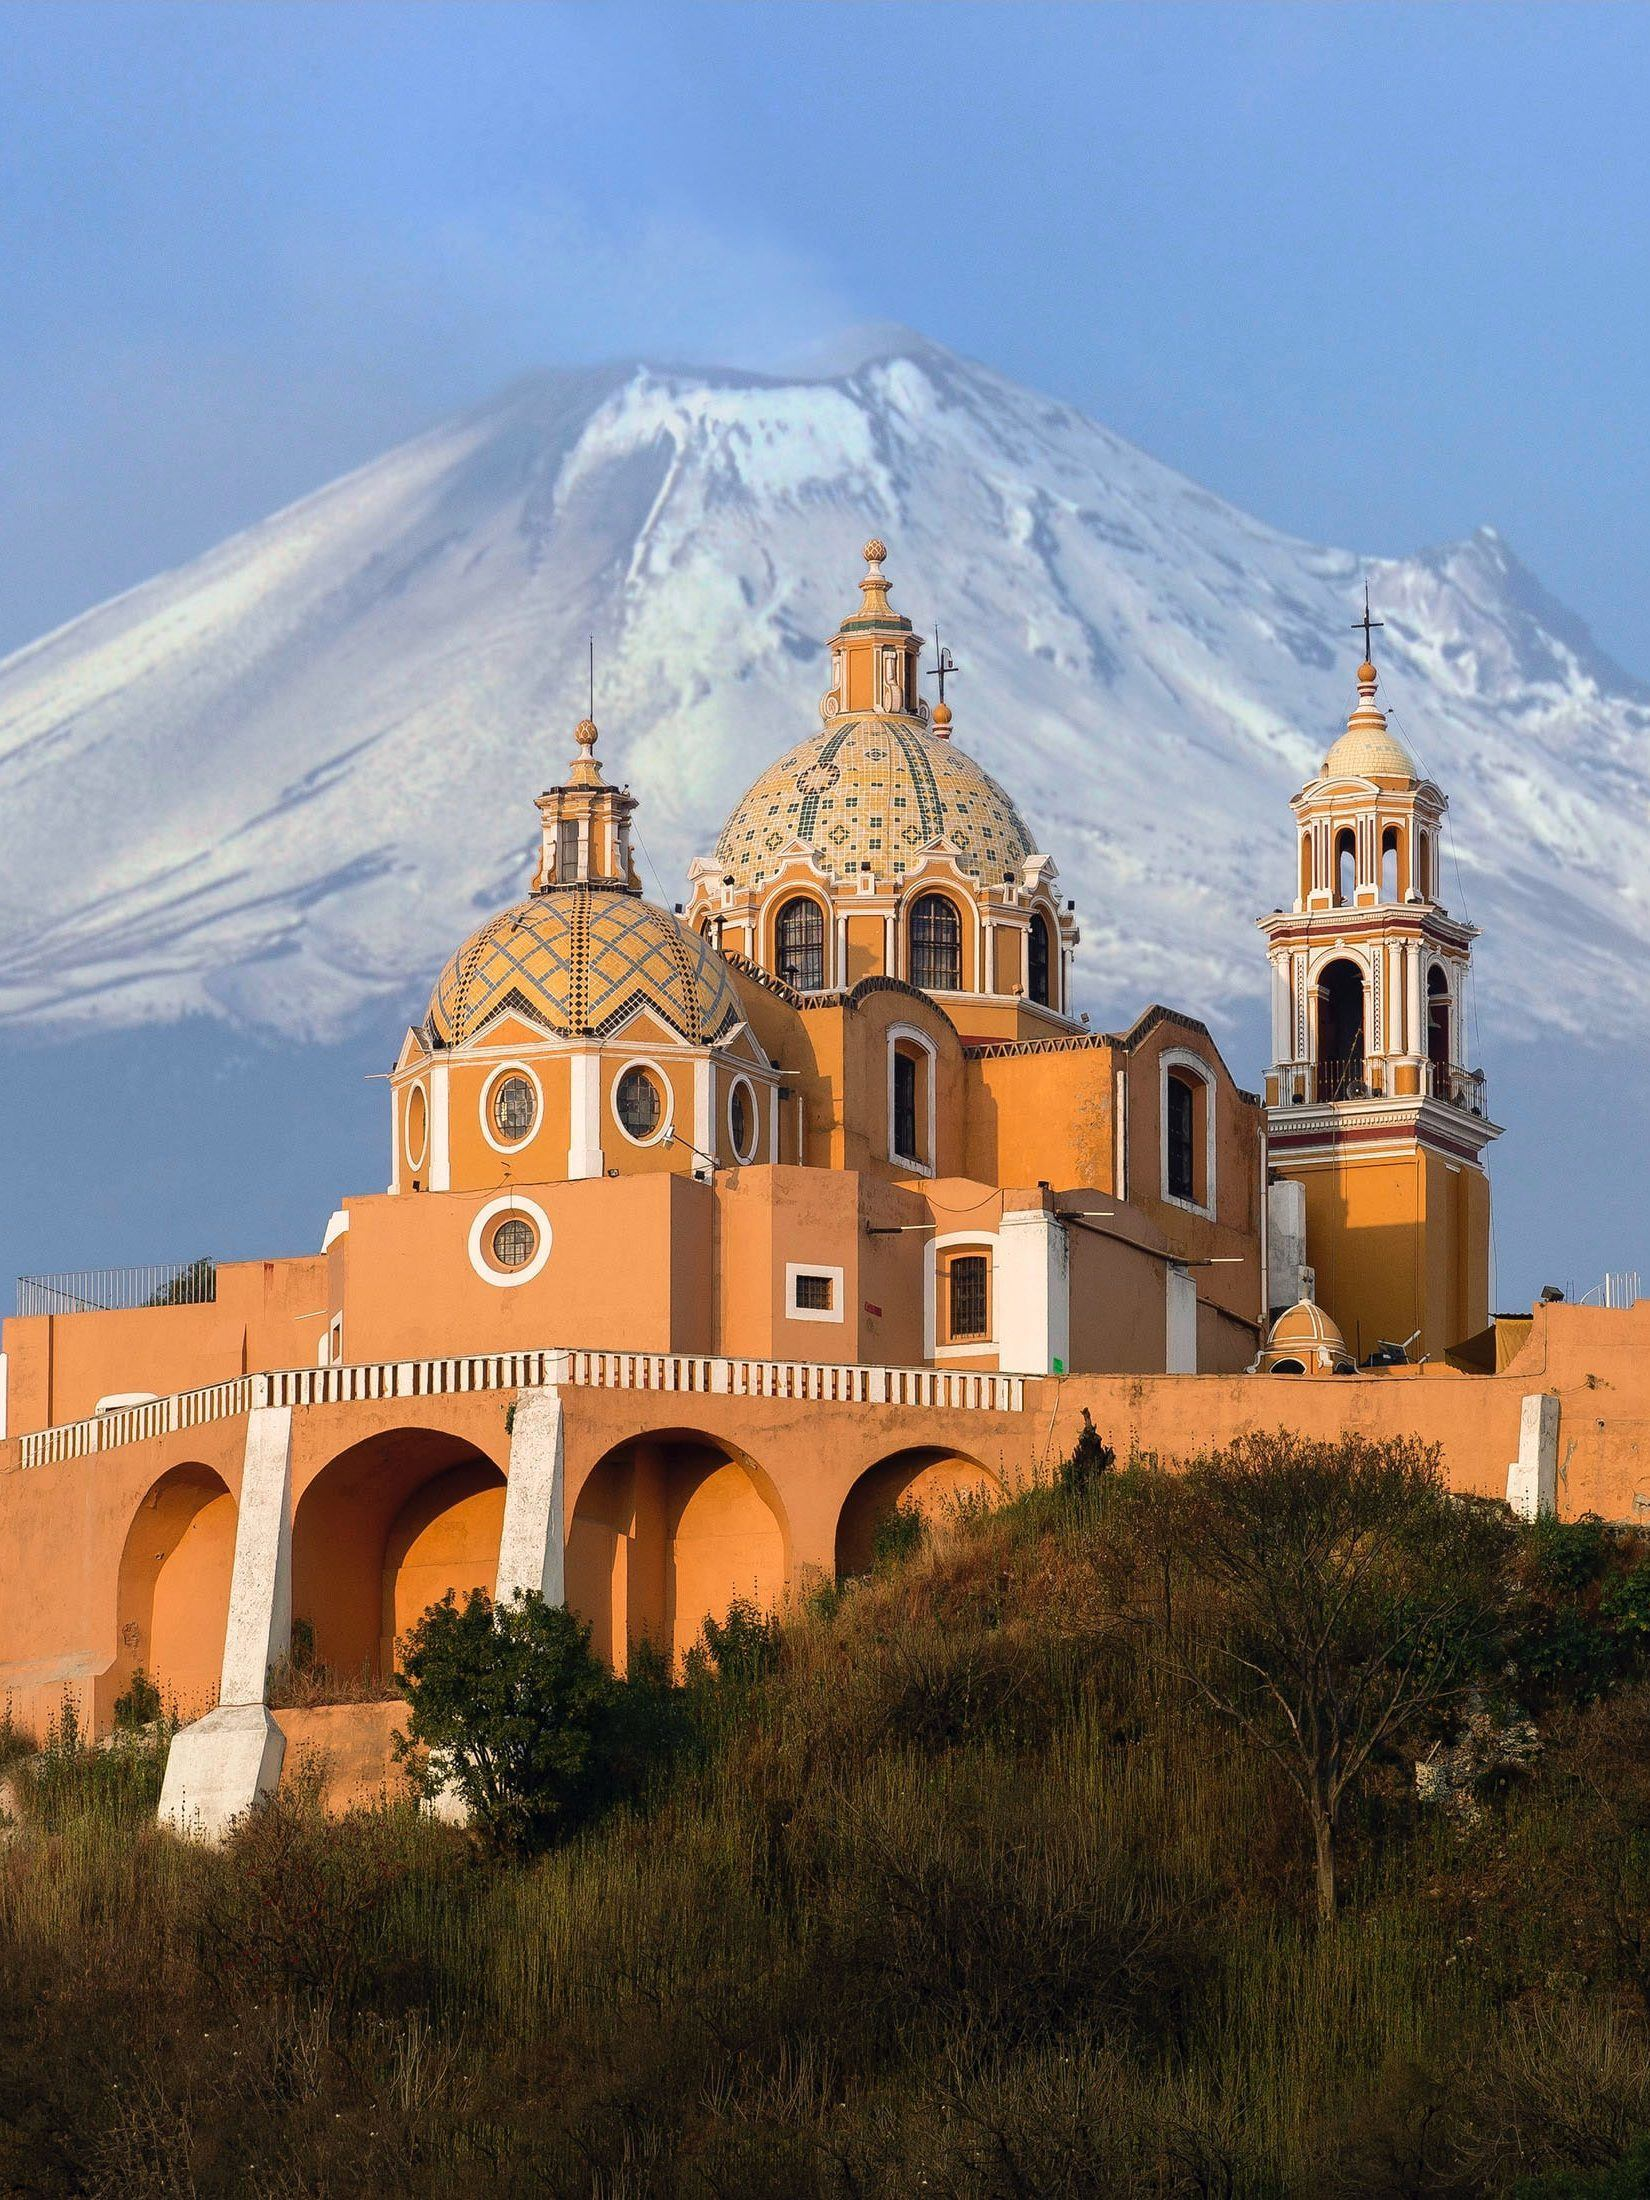 Home.fit most-beautiful-places-in-mexico-17-edited The 25 Most Beautiful Places in Mexico